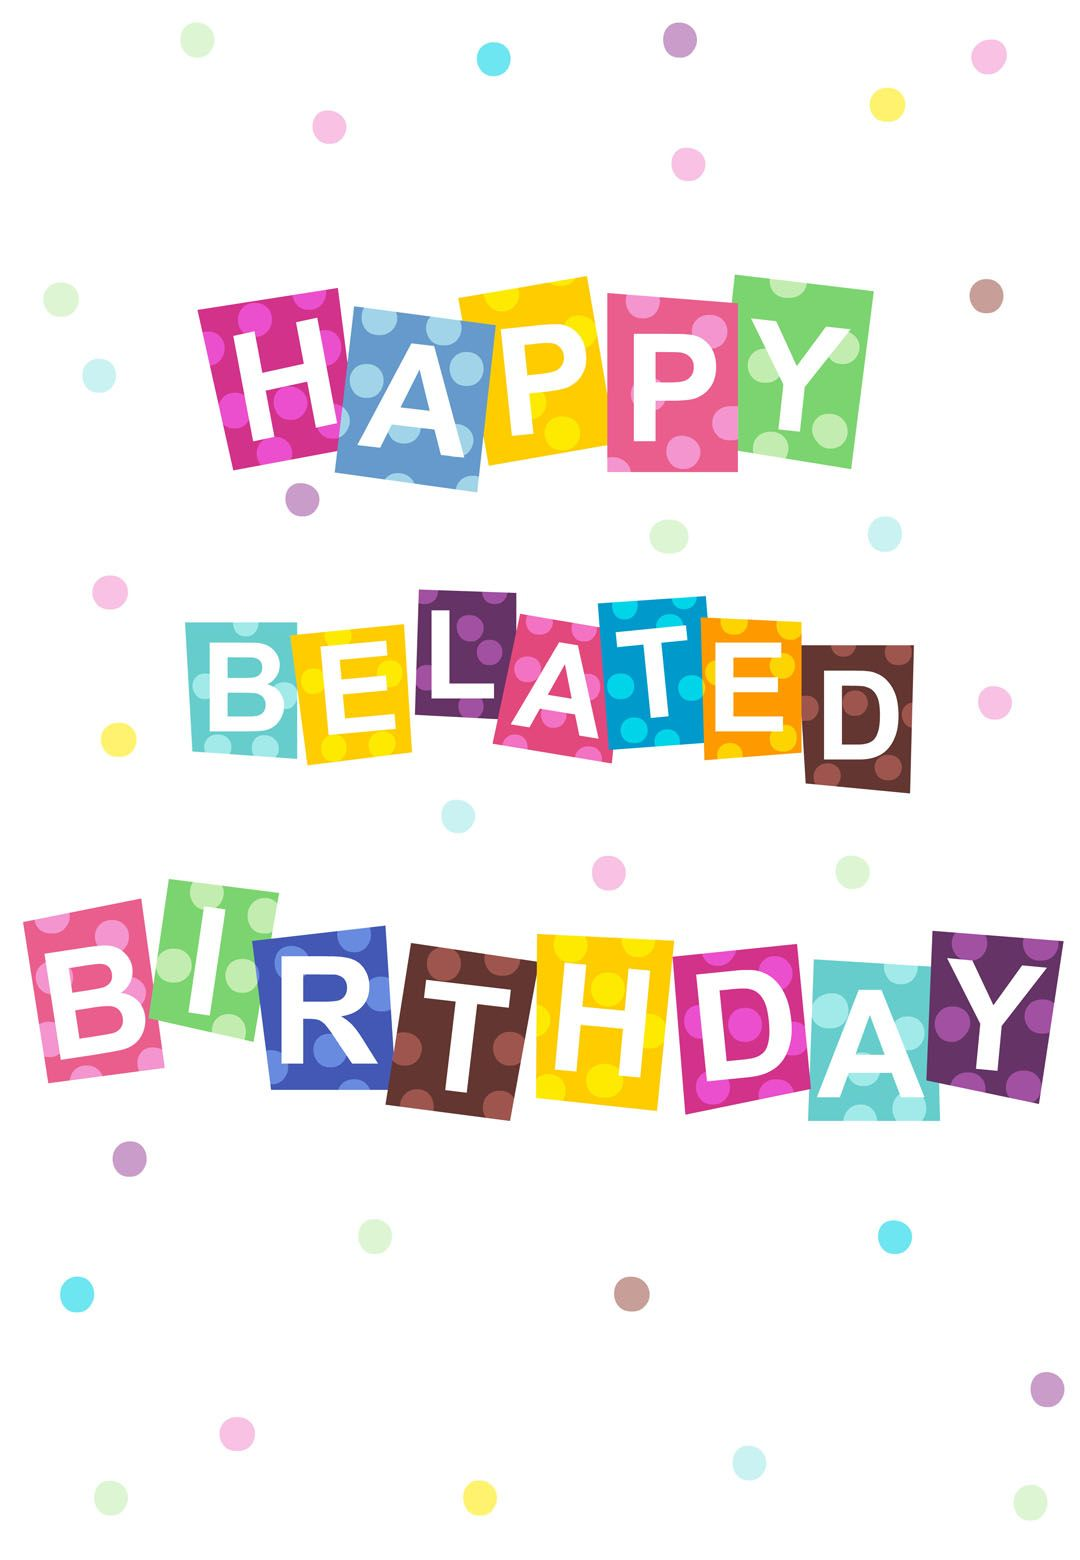 free clipart belated birthday wishes ; c7ff83e6f2c16d51f7ca572e00a597cd